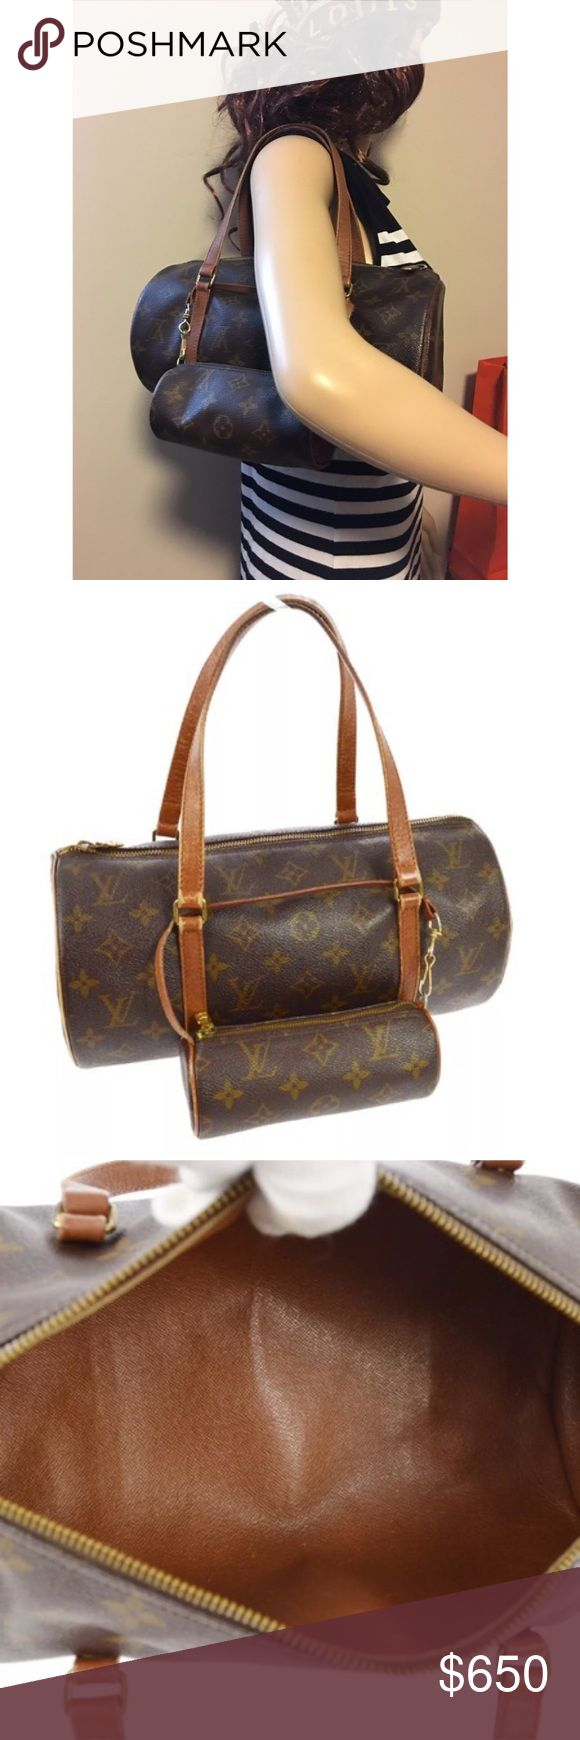 "Louis Vuitton Papillon 30 Bag with Free LV Pouch Very clean Original Louis Vuitton Monogram Papillon 30 Shoulder Bag.  Code: NO 0974 Size: 11.8"" x 5.9"" x 5.9"" Handle drop: 7.5"" Canvas leather -LV Monogram  Country of origin - France Condition: Excellent - Some wear on handles near hardware. Inside writing is fading. Photos are best description. Cosmetic bag in photo is INCLUDED. Louis Vuitton Bags Shoulder Bags"